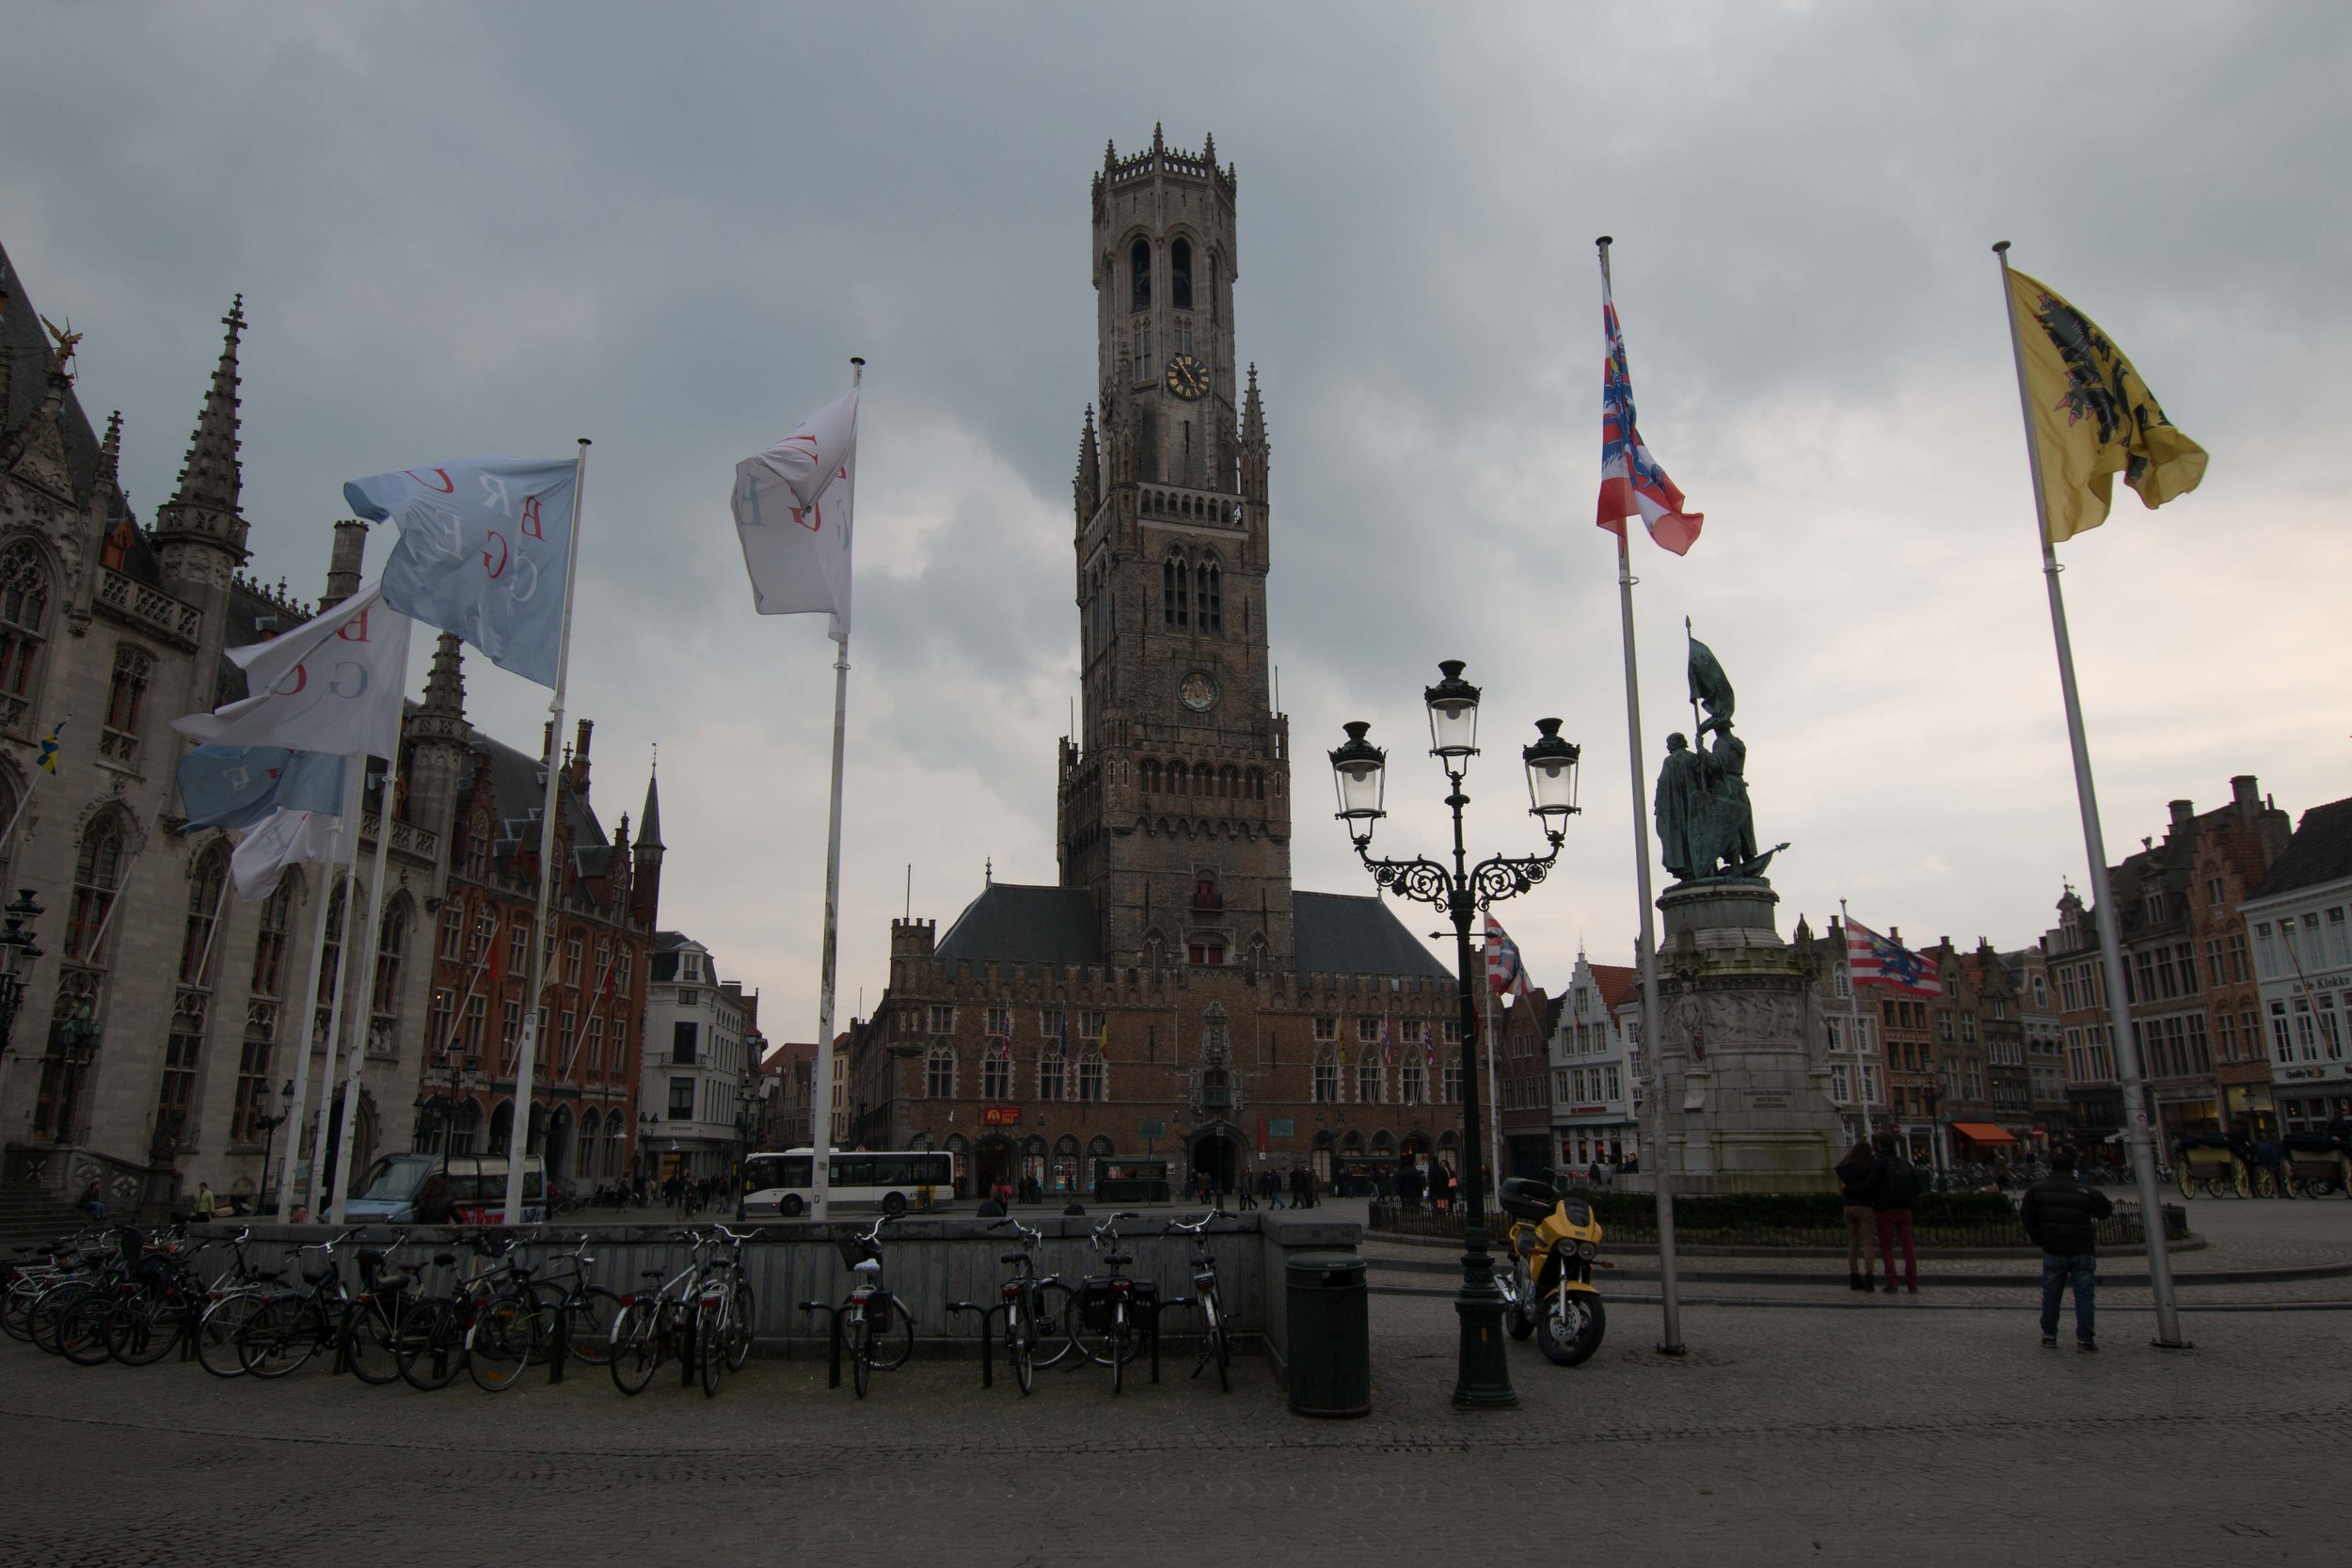 Meeting location of the Legend of Bruges tours is in front of the statue